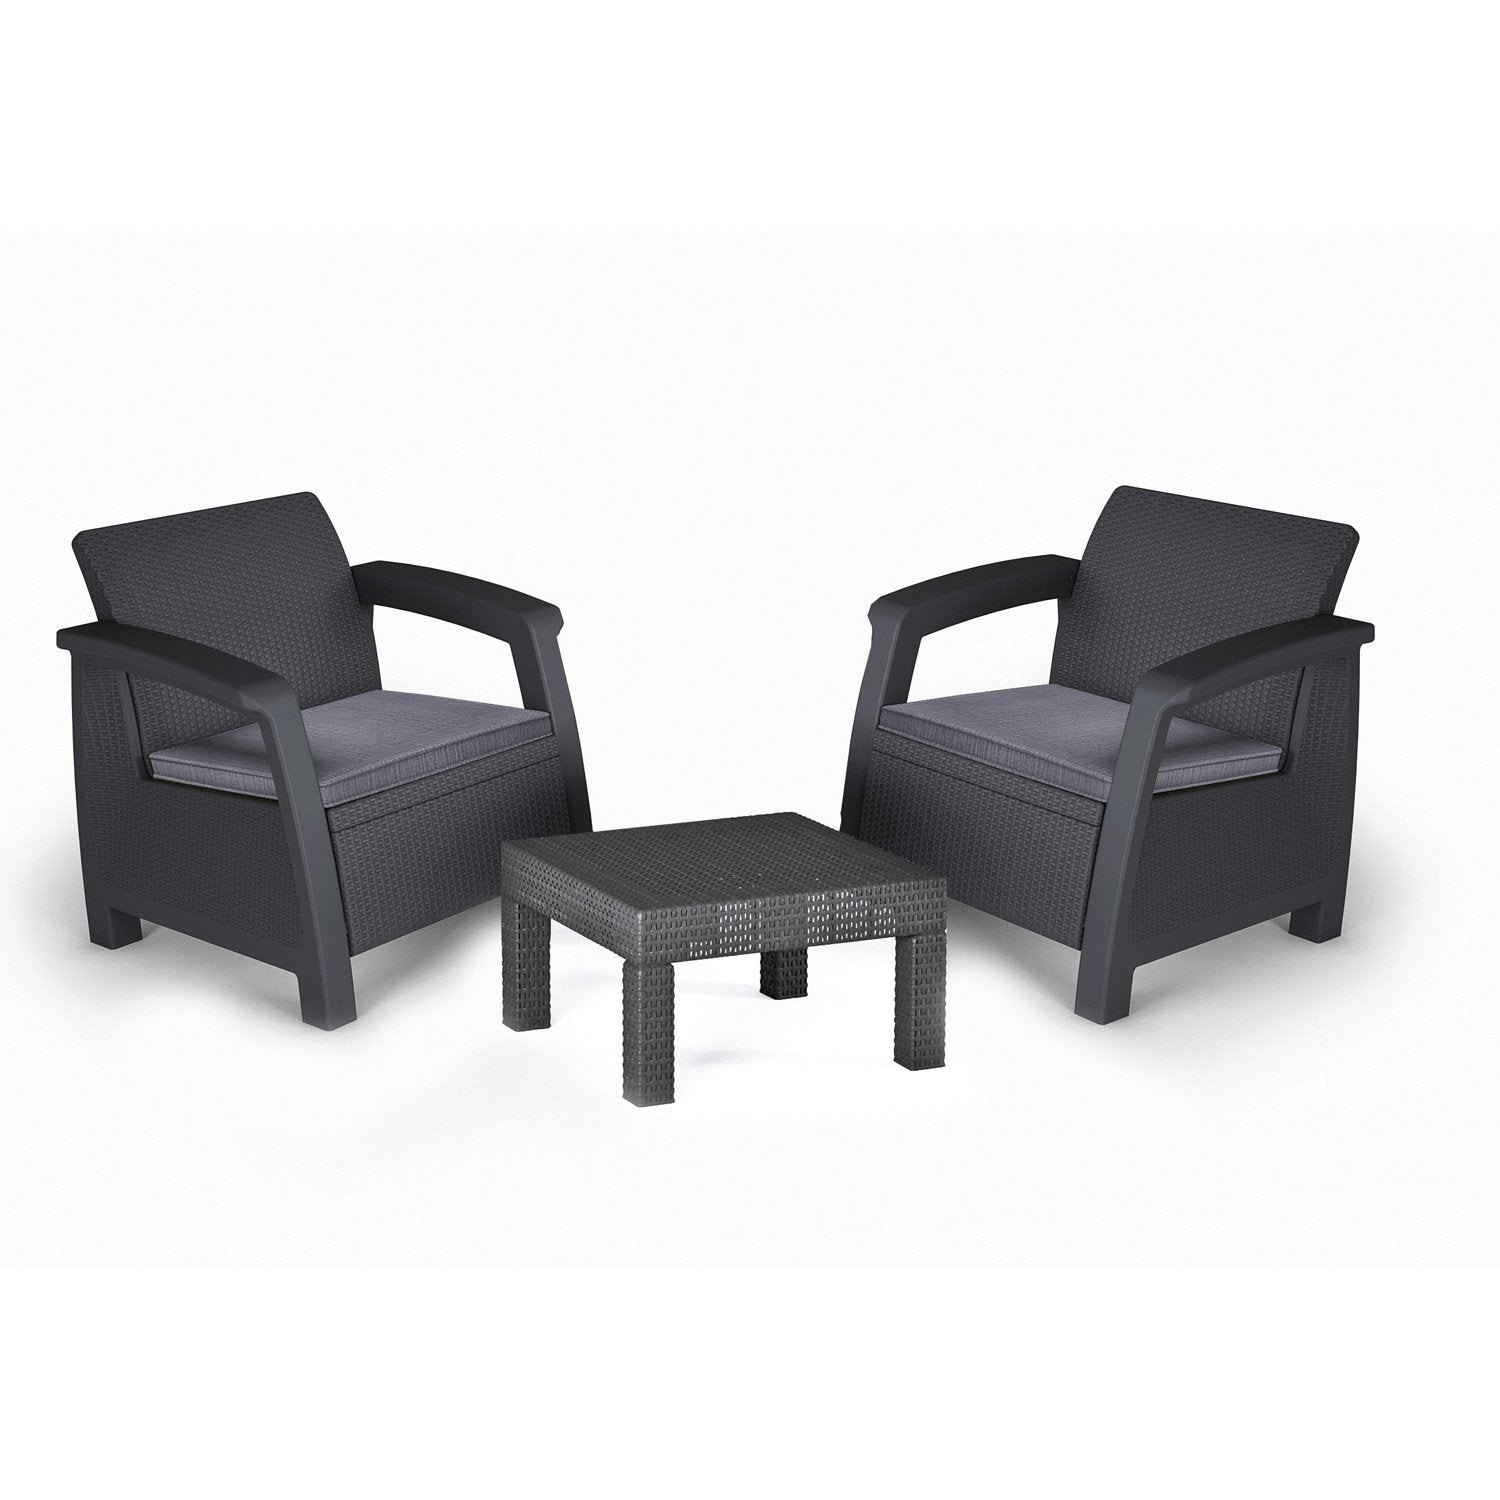 Salon de jardin bahamas r sine inject e anthracite 2 for Salon de jardin 2 personnes